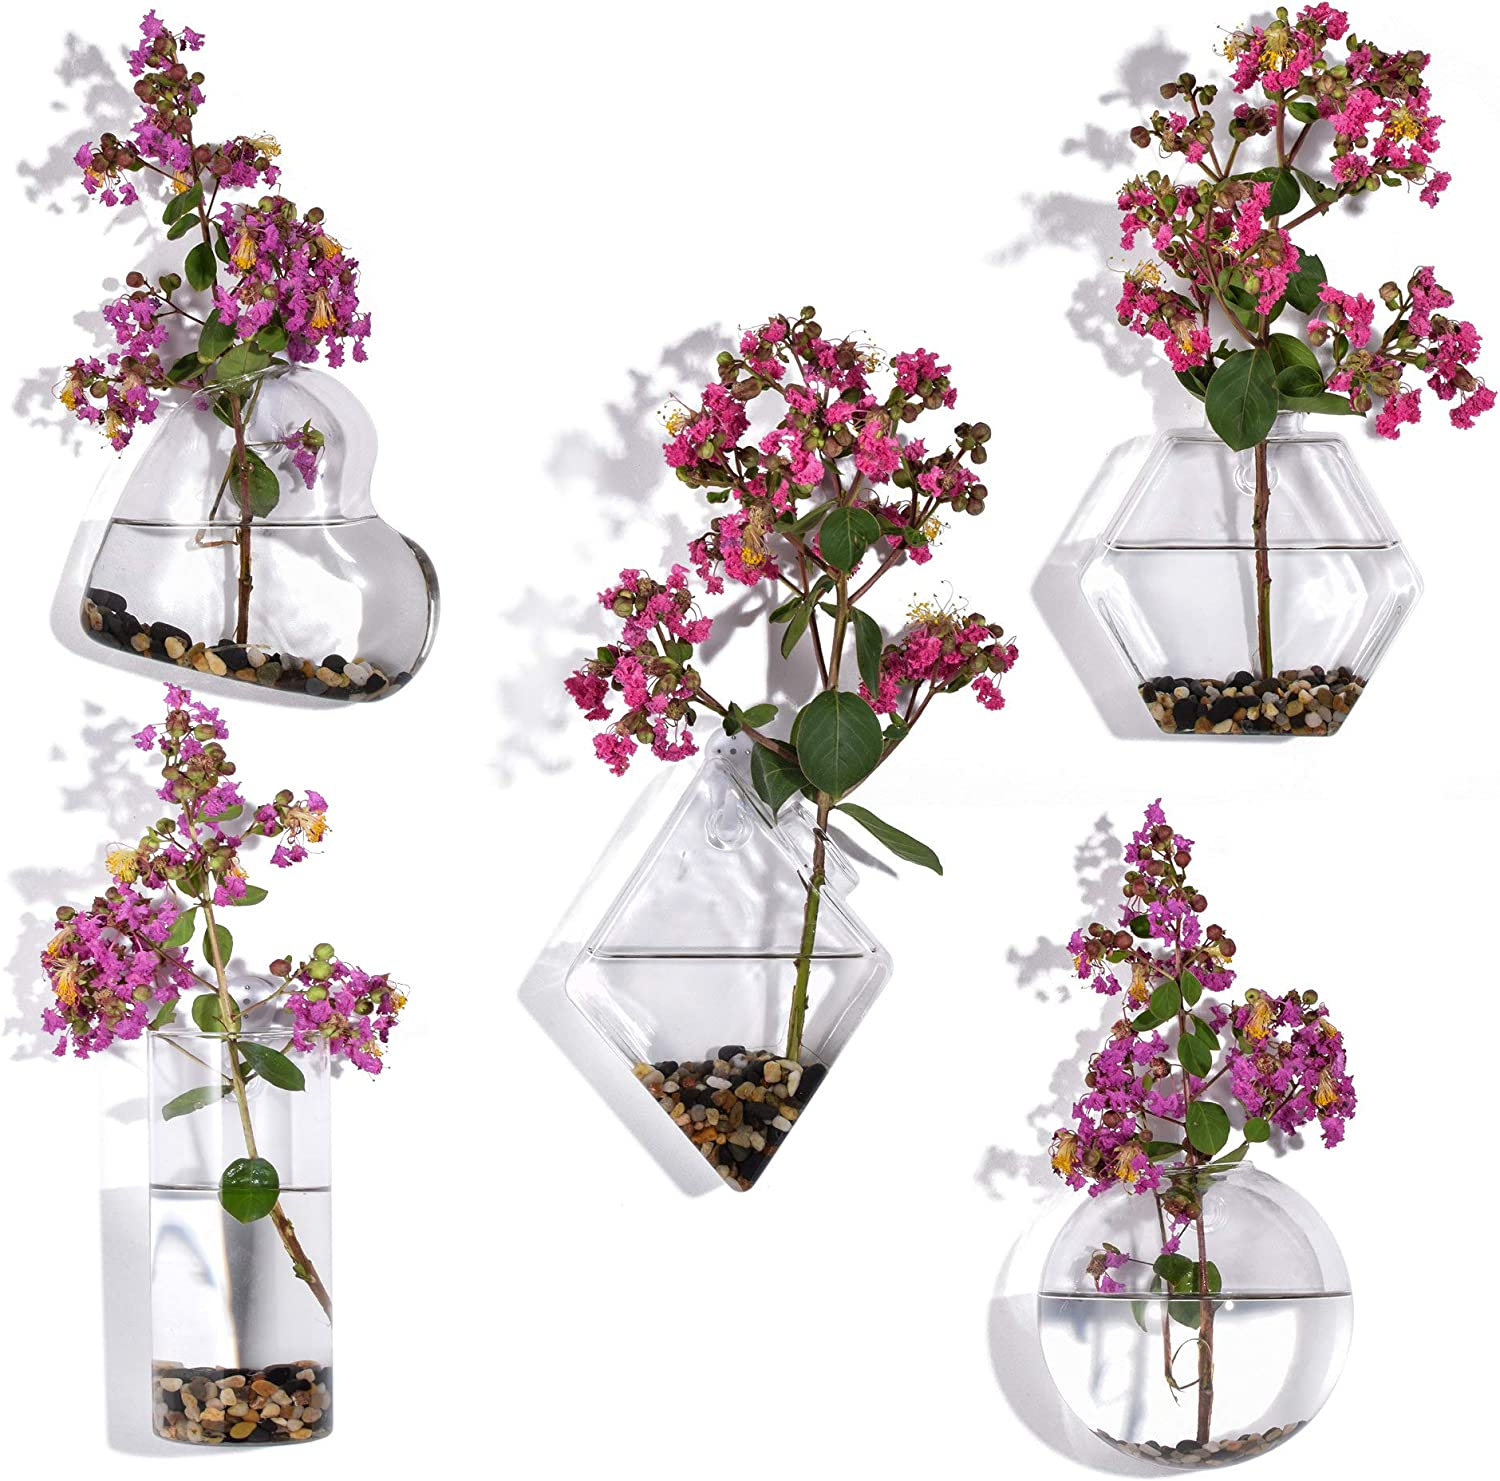 Glass Planters Wall Hanging Planters